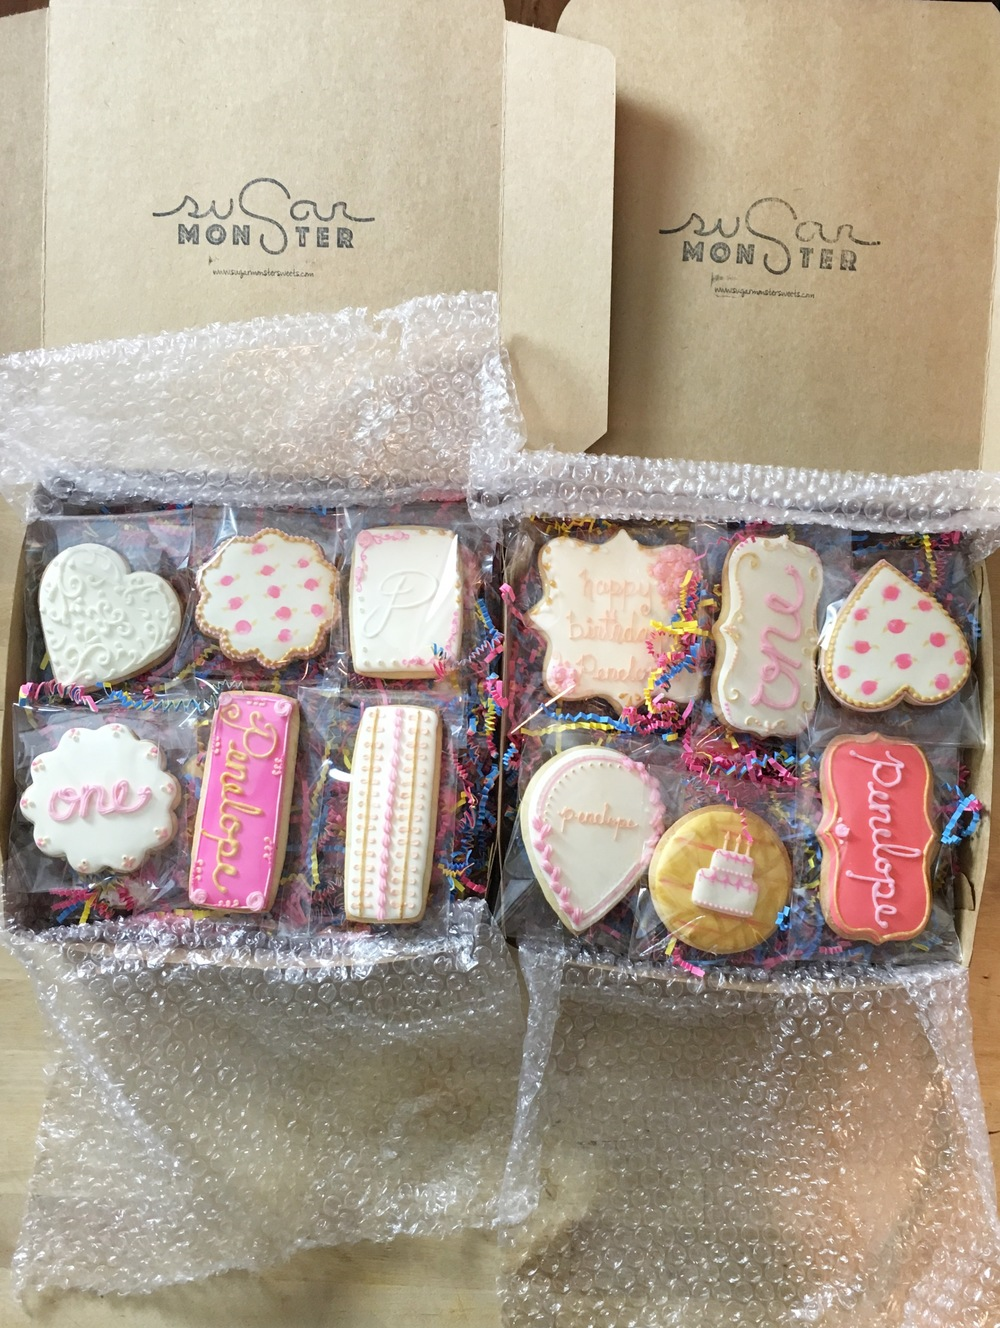 We package and ship our cookies worldwide. Need a gift? We have you covered!